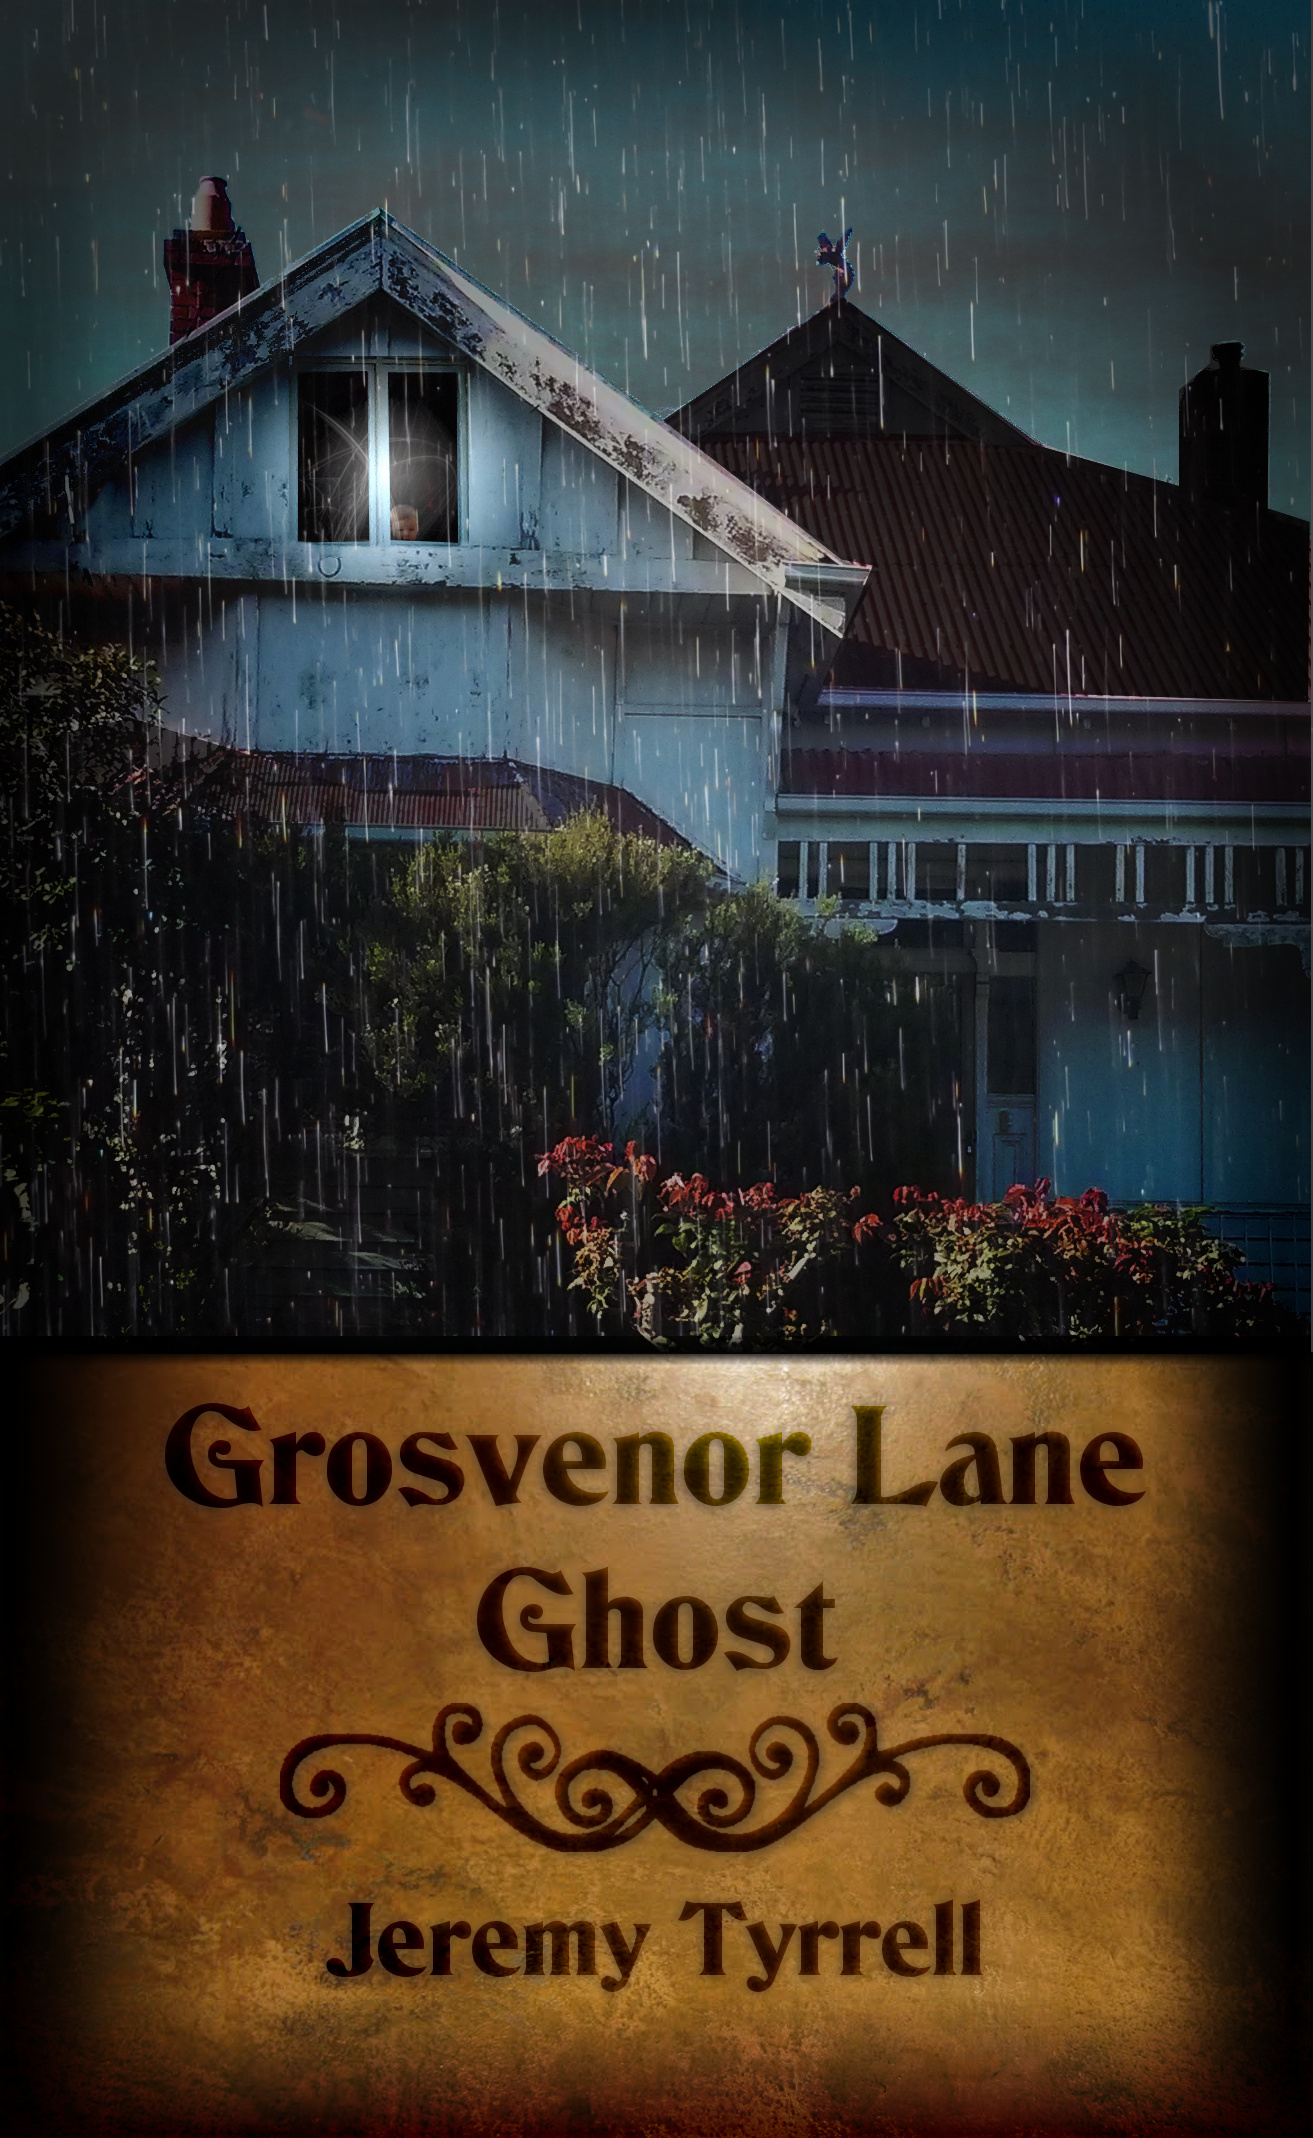 Grosvenor Lane Ghost is Free!